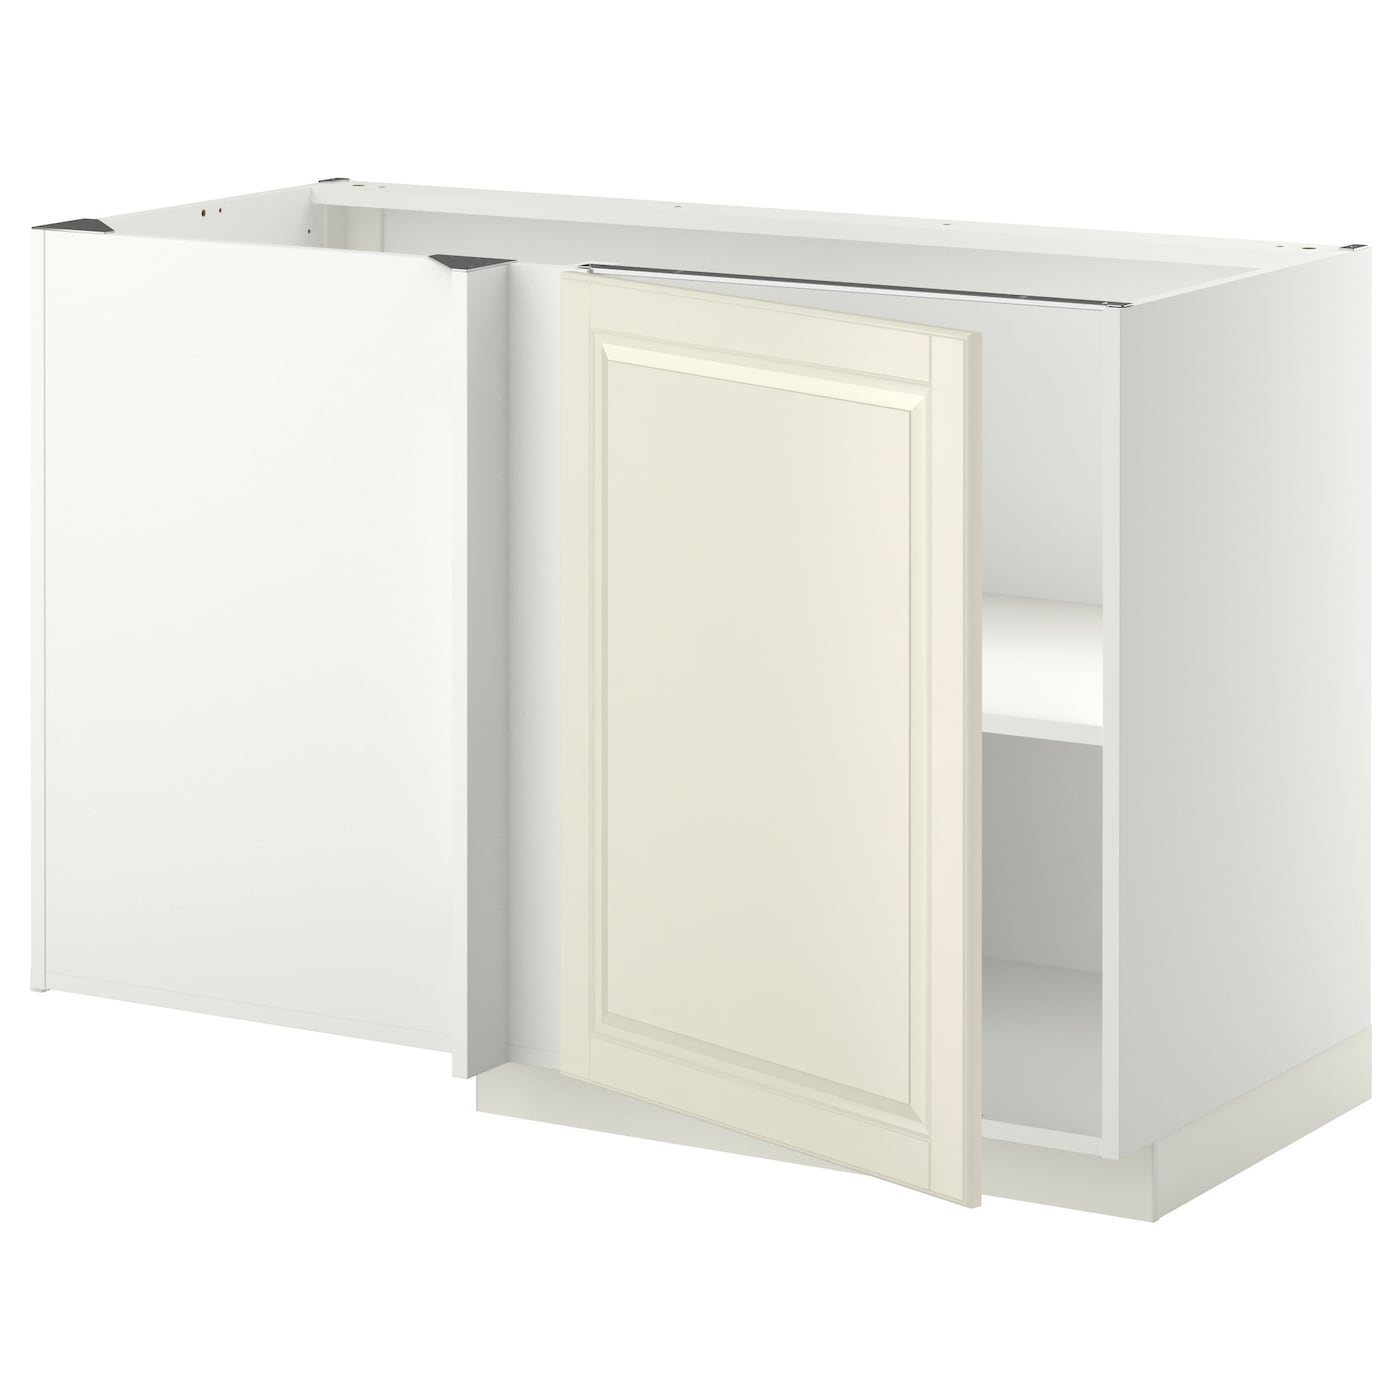 corner bathroom cabinet ikea metod corner base cabinet with shelf white bodbyn 17914